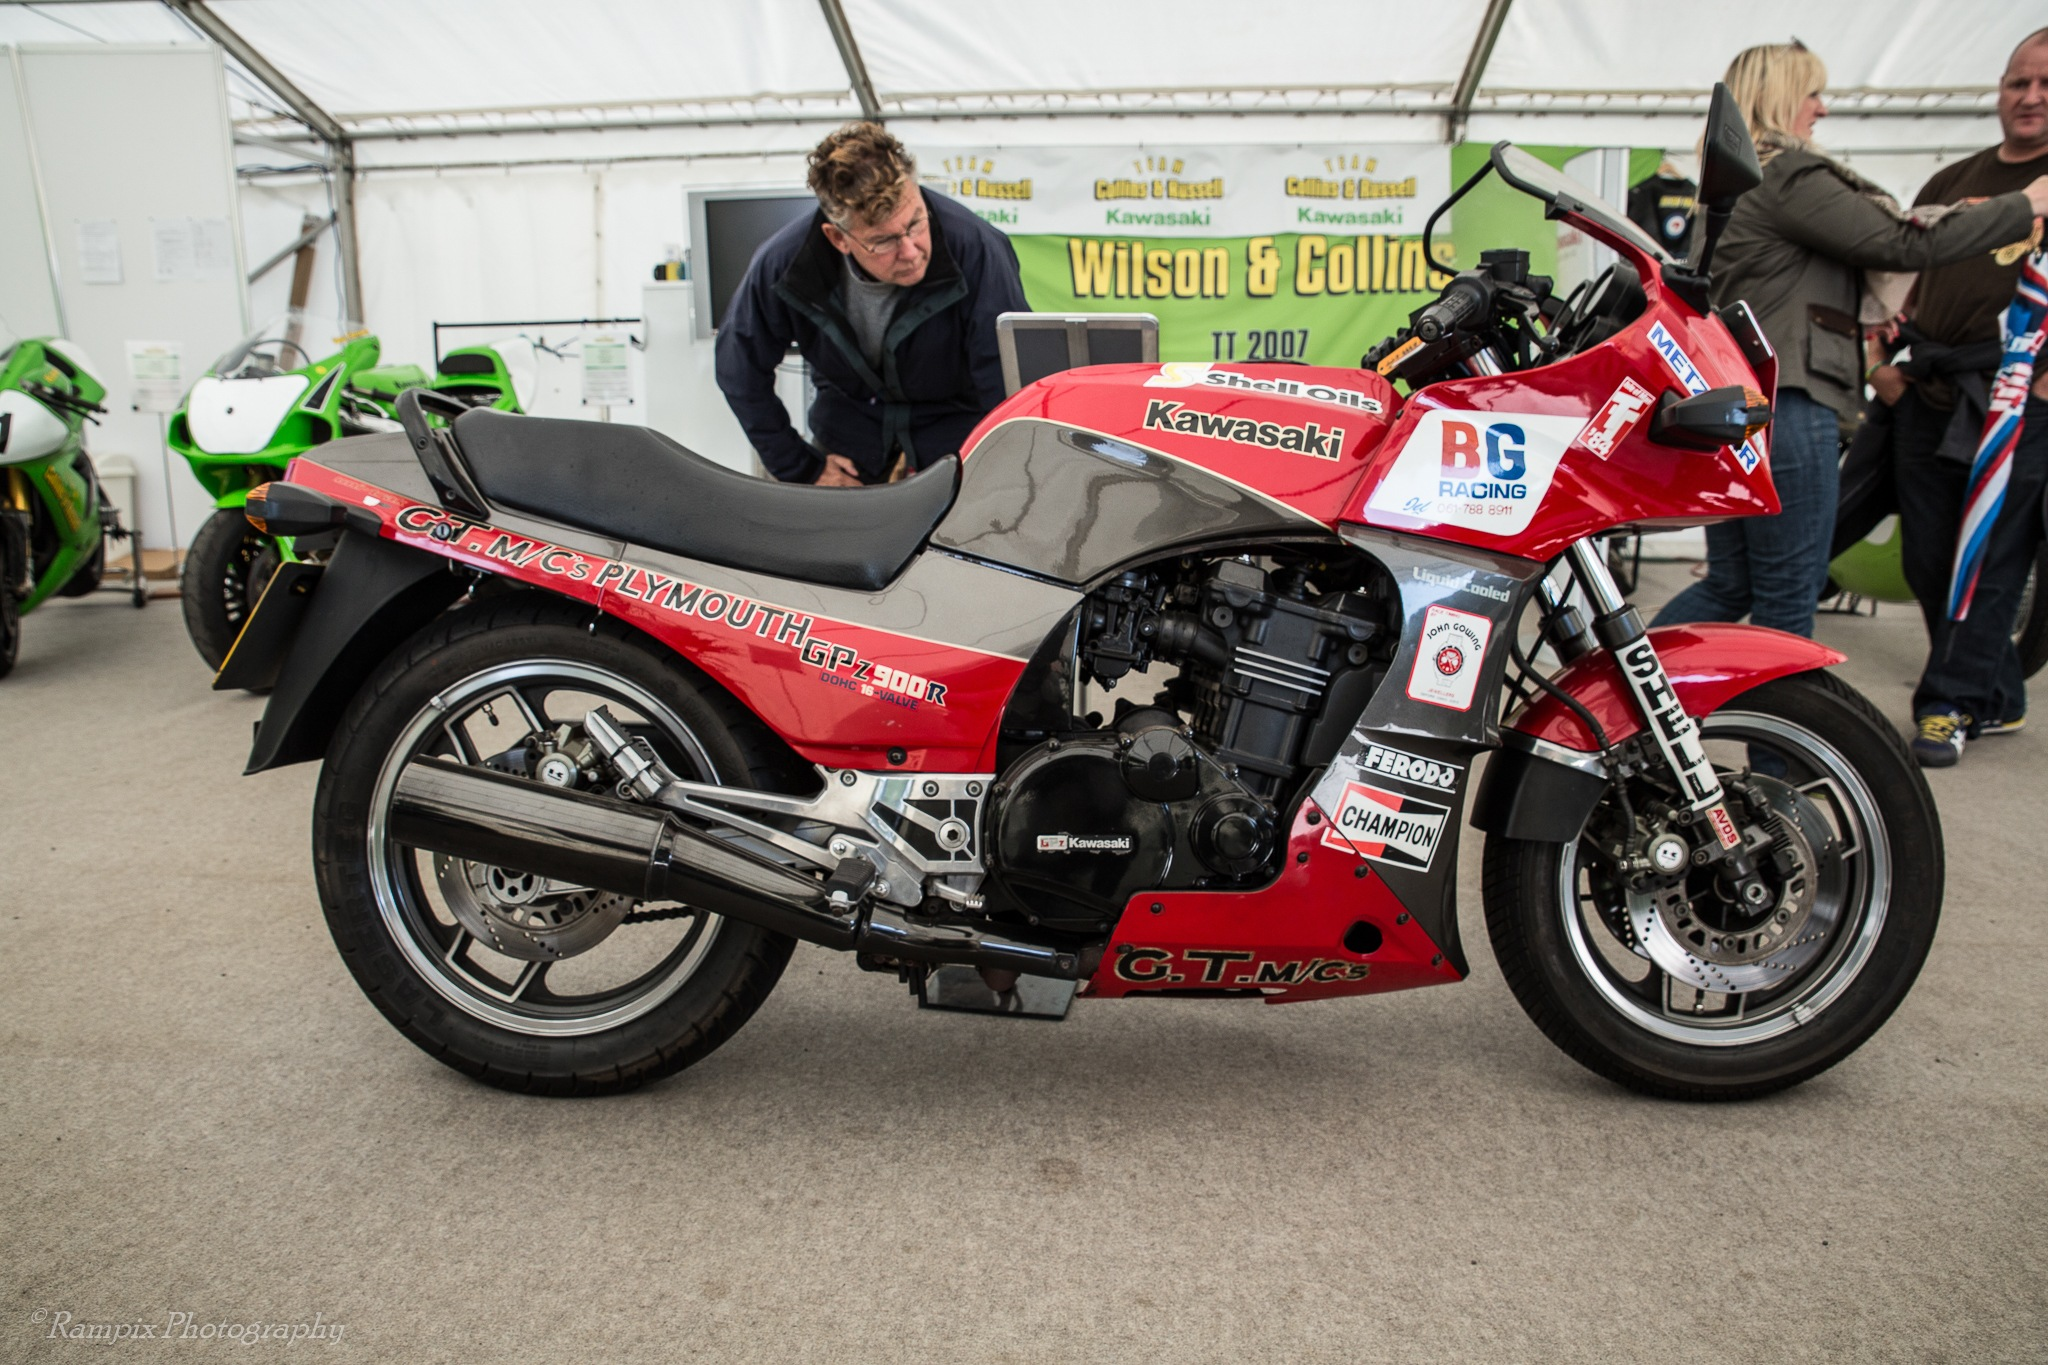 Isle of Man TT Classic by Rampix